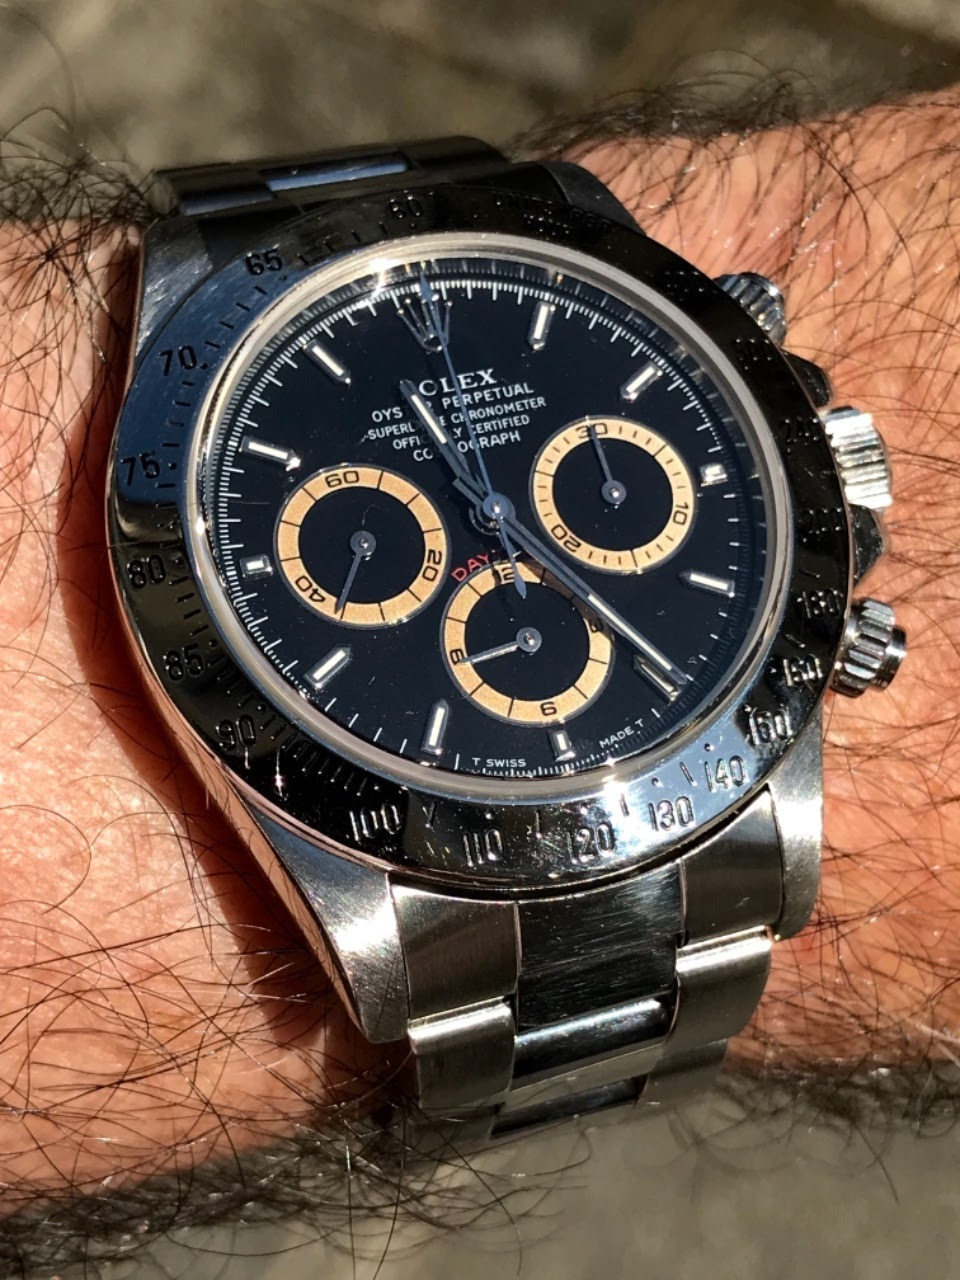 6cef3d4f4d42 Horological Meandering - Guess about summer holidays...